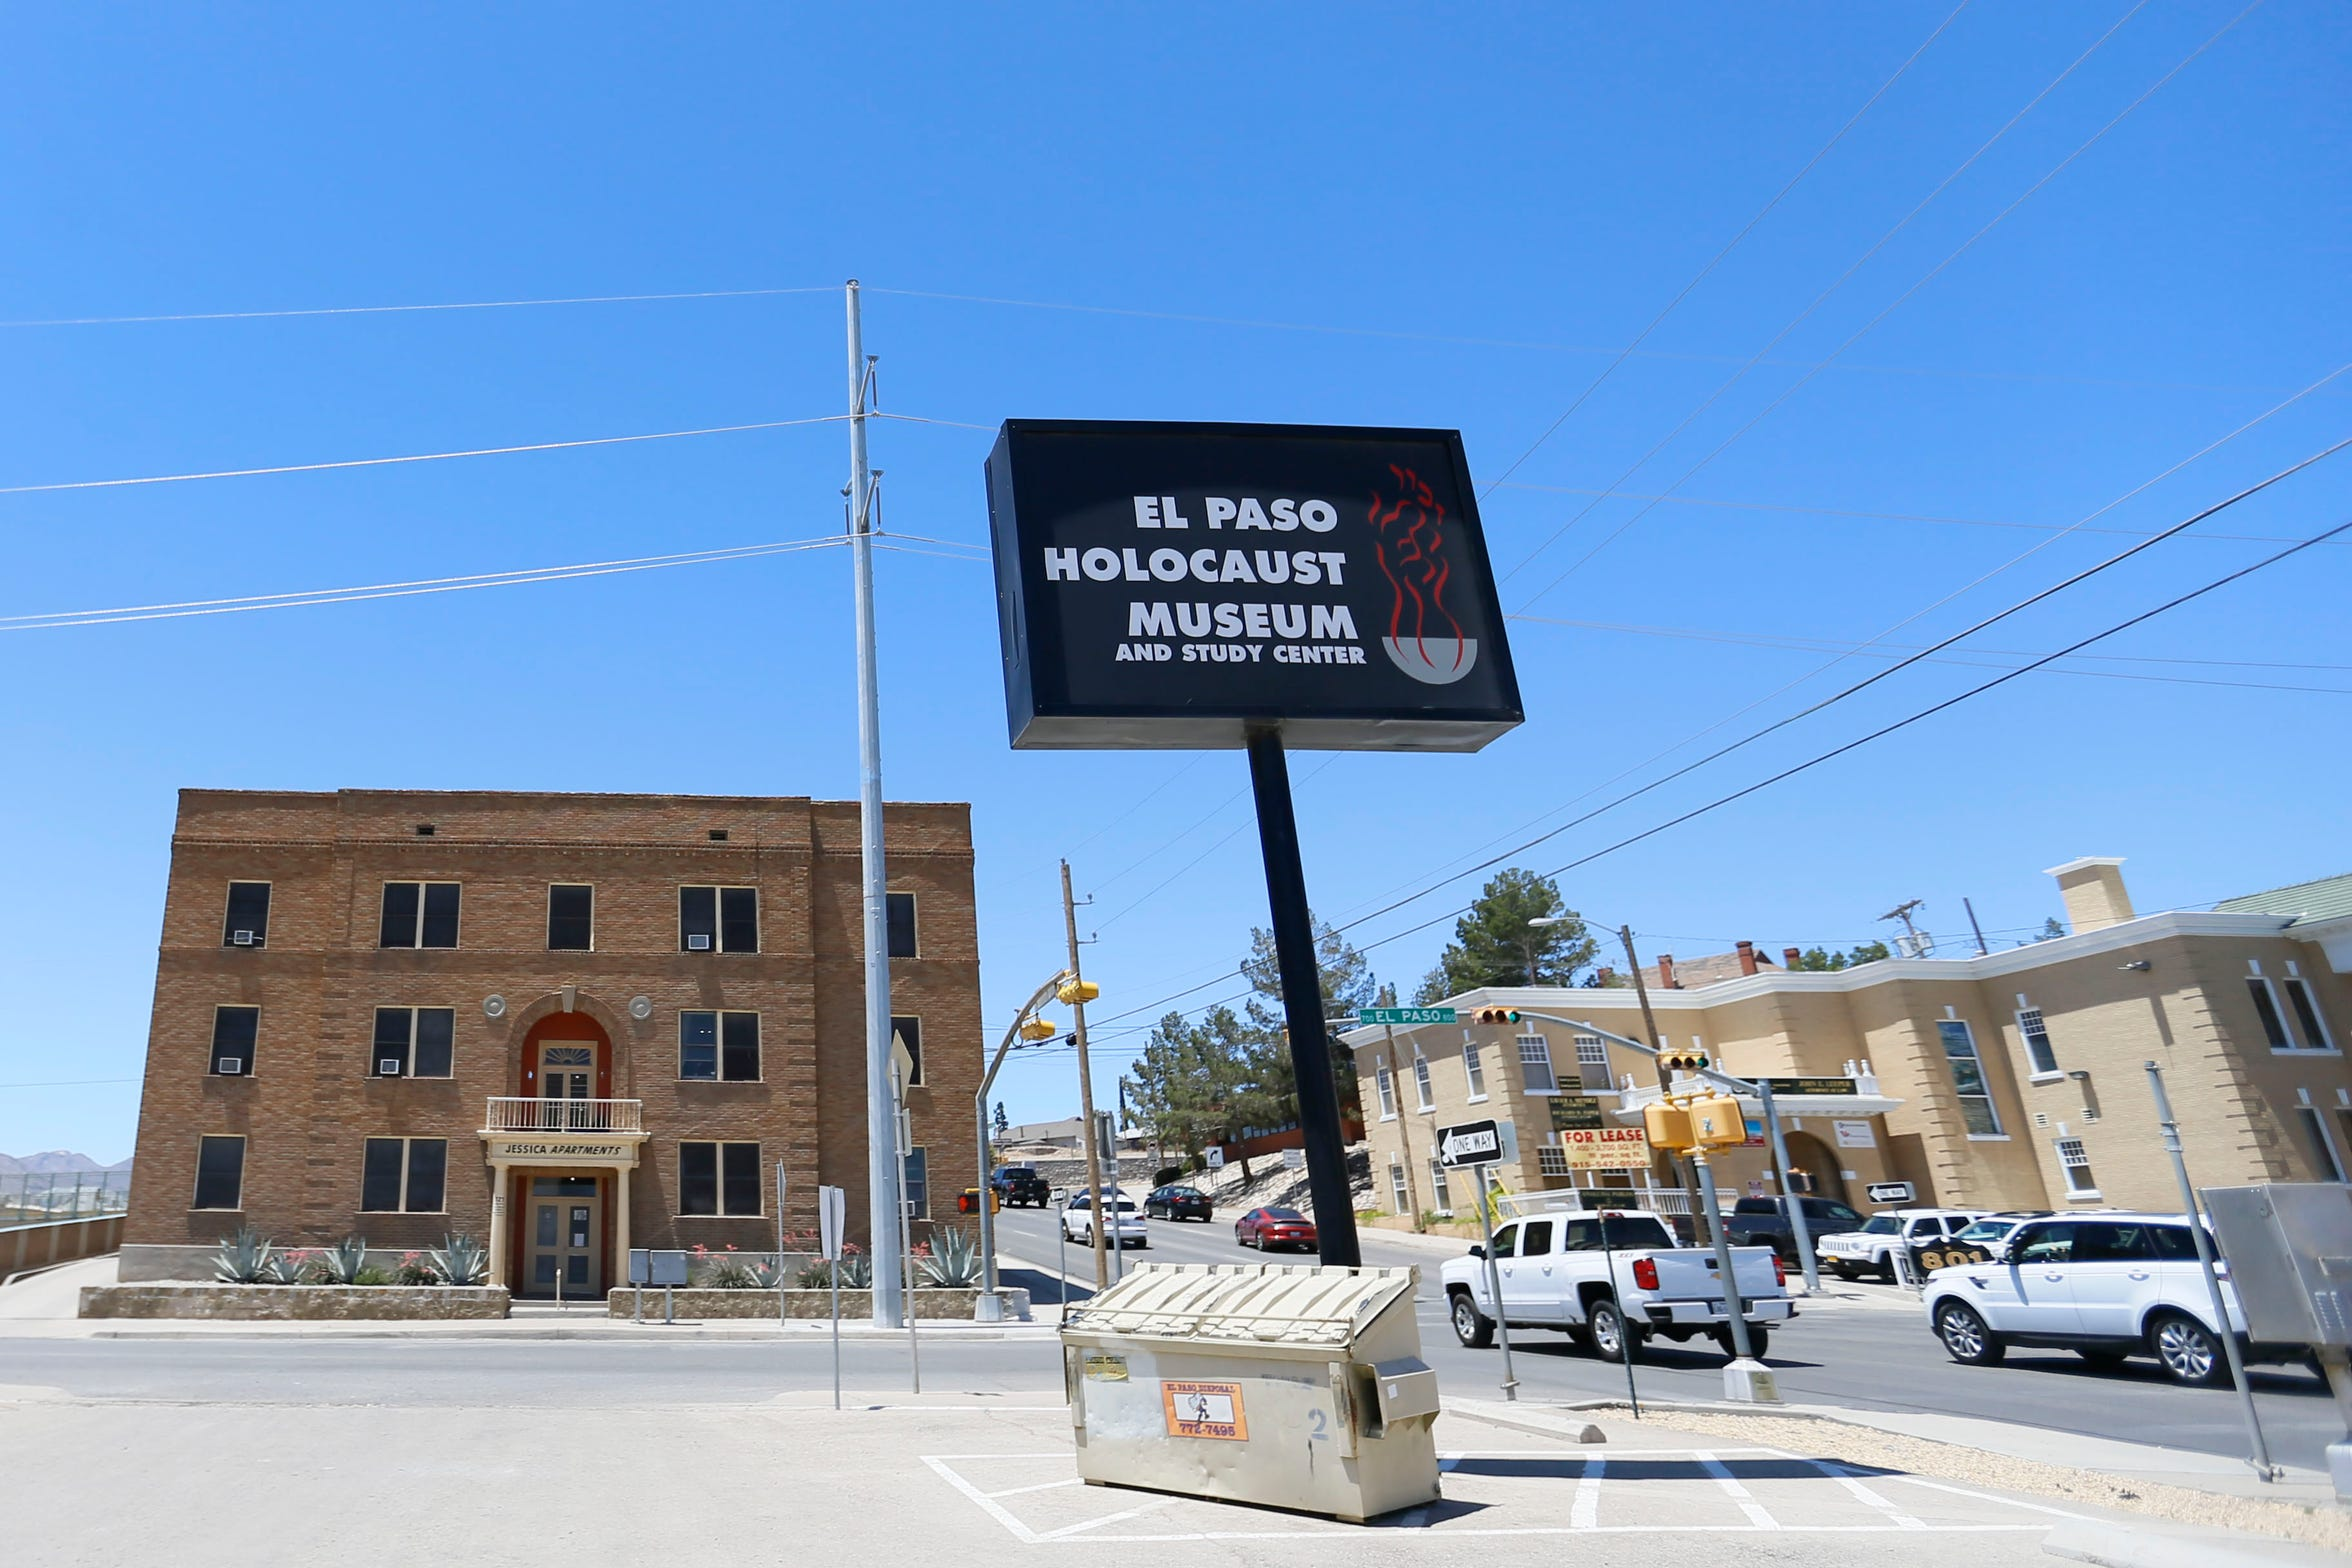 The Jessica Apartments at 721 N. El Paso St., and the nearby El Paso Holocaust Museum would likely be demolished under a proposed expansion of Interstate 10 through Downtown El Paso.